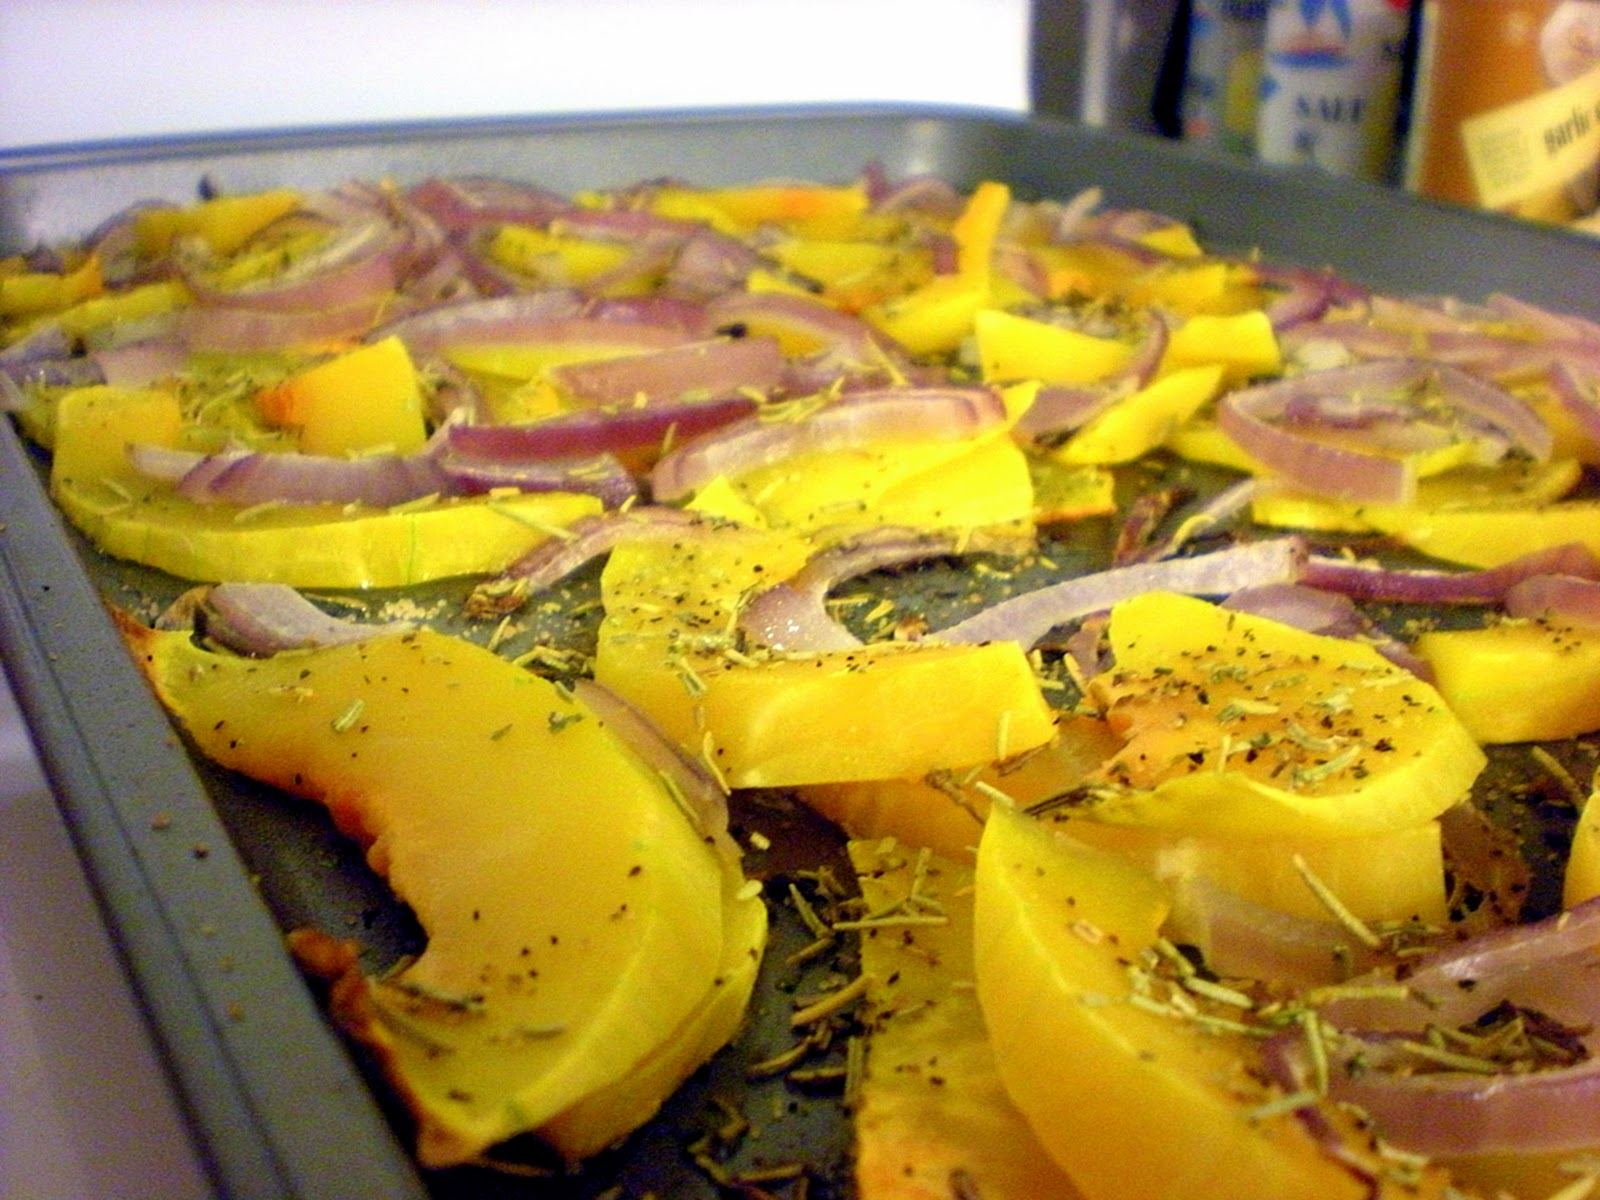 ... first...roasted butternut squash with caramelized onions and rosemary